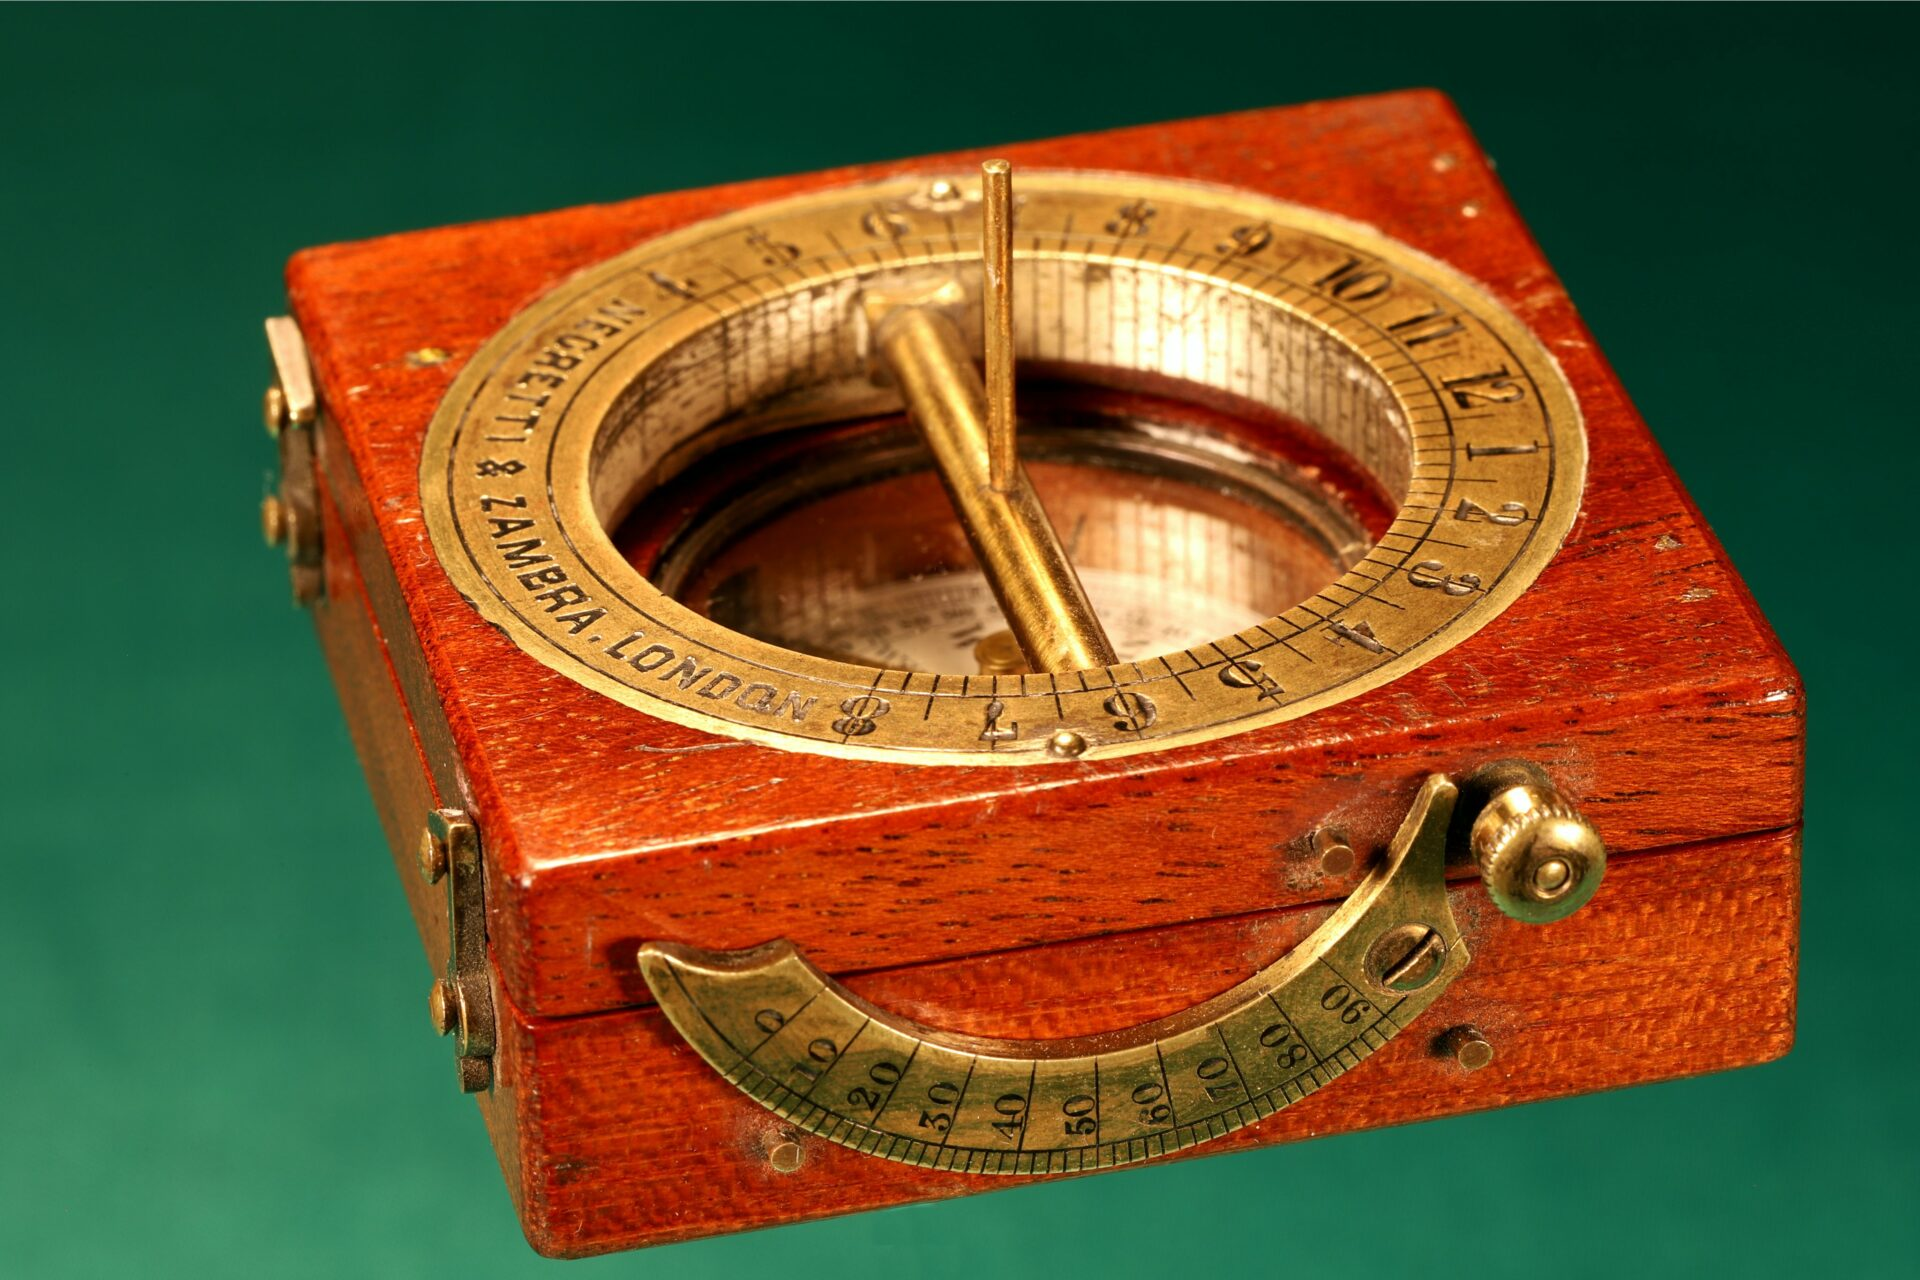 Image of closed Francis Barker Equinoctial Compass Retailed by Negretti & Zambra c1870 with gnomon raised